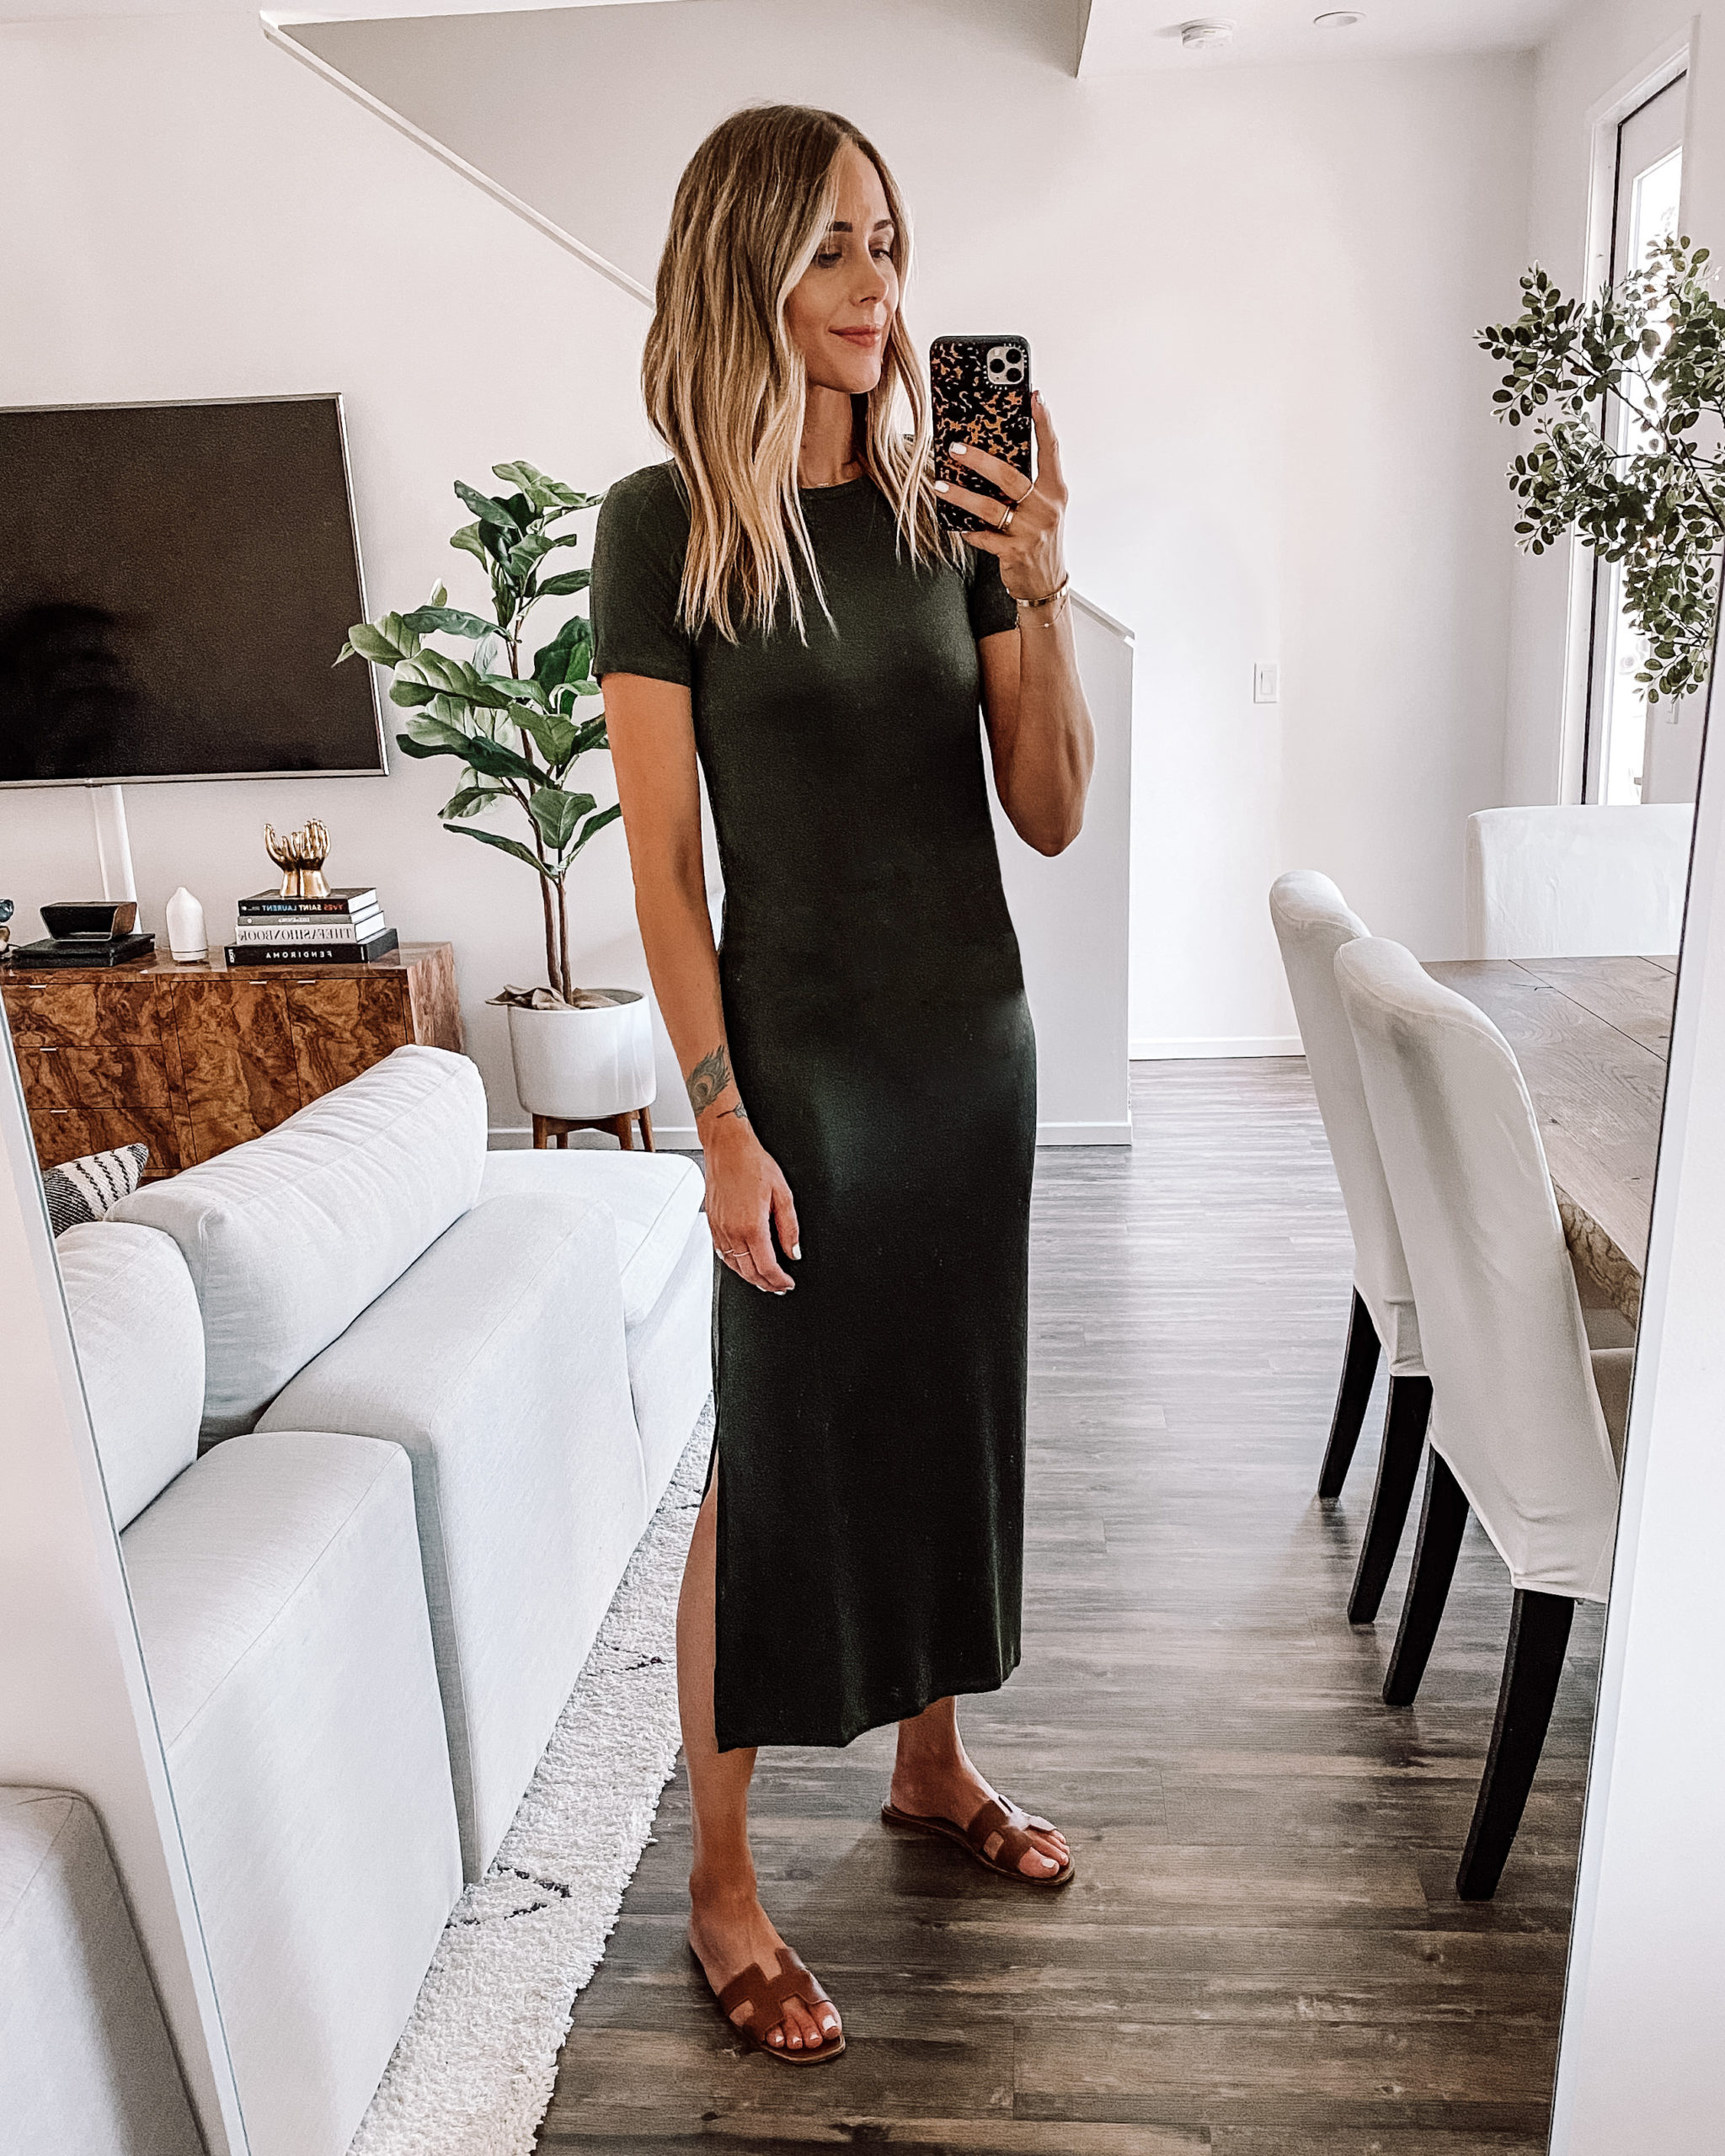 Fashion Jackson Wearing Amazon Fashion Olive Green Maxi T-Shirt Dress